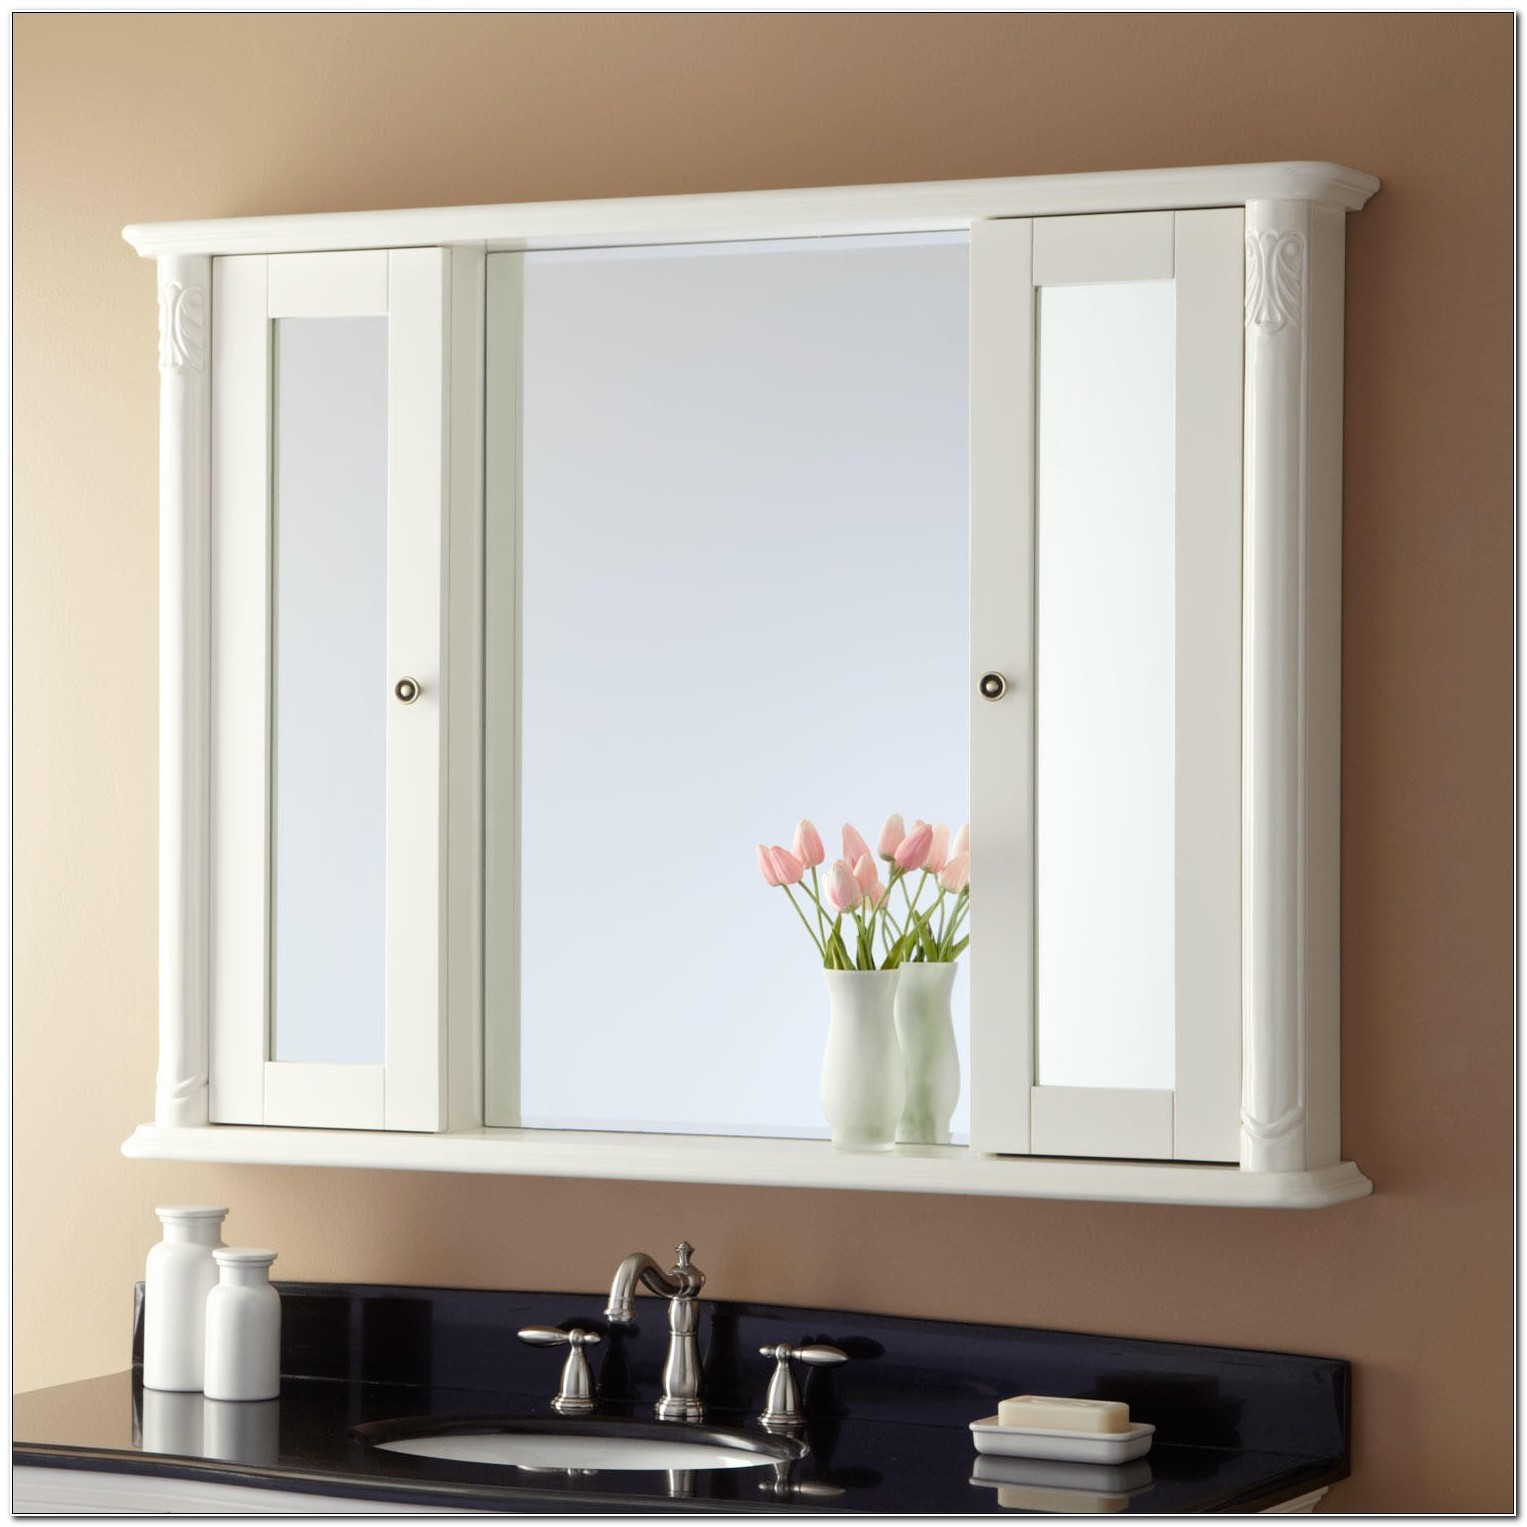 Surface Mount Medicine Cabinets With Mirror